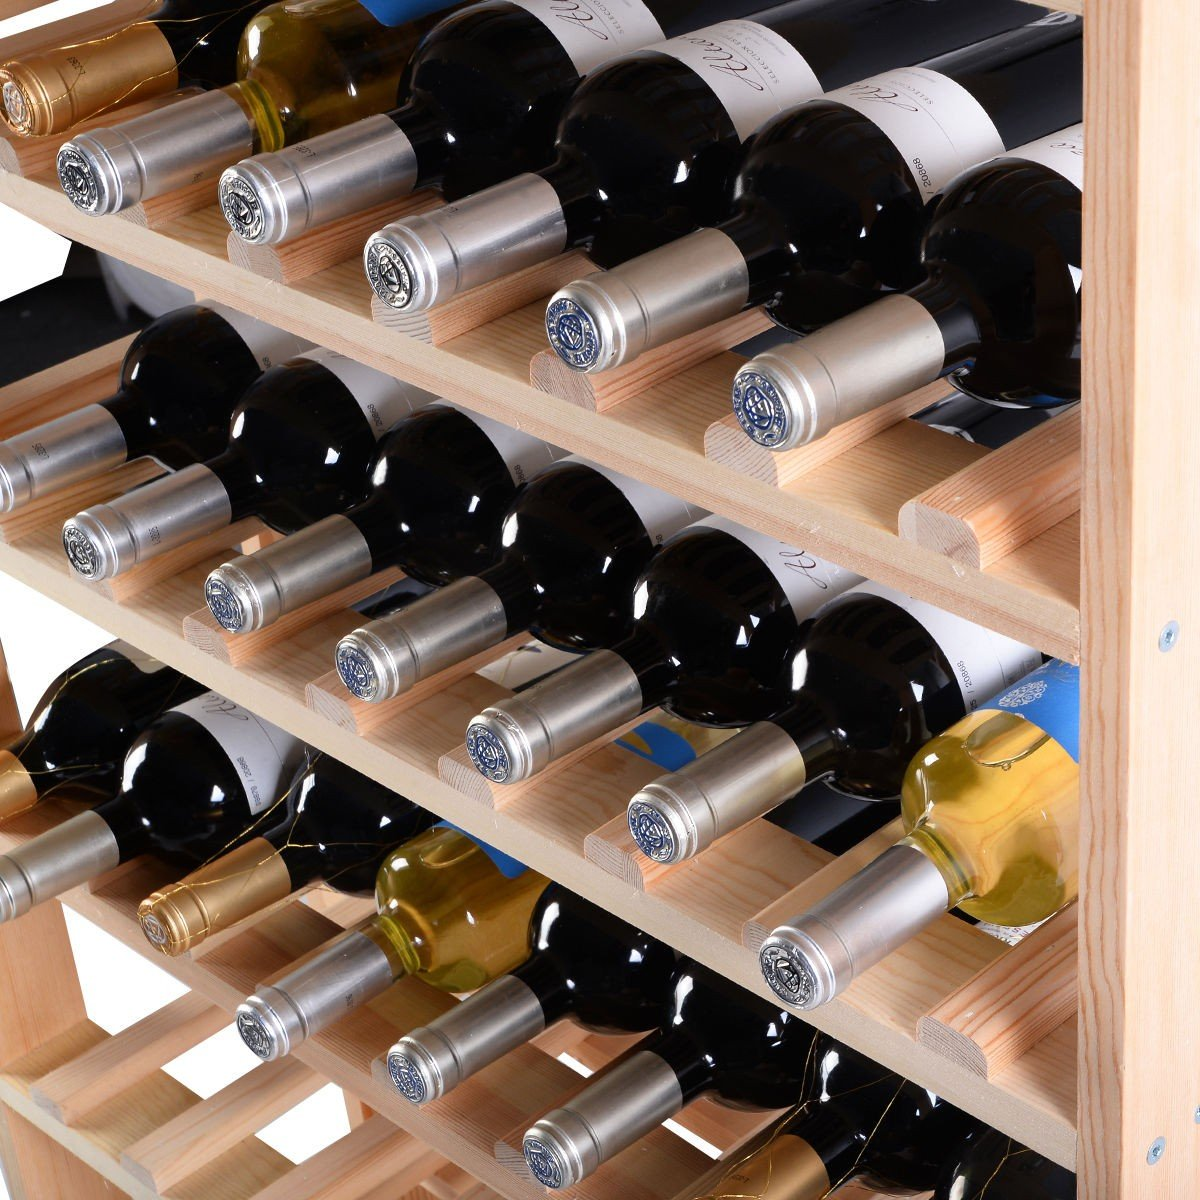 Wooden Bottle Rack Wooden Wine Holder Bottle Rack For 120 Bottles